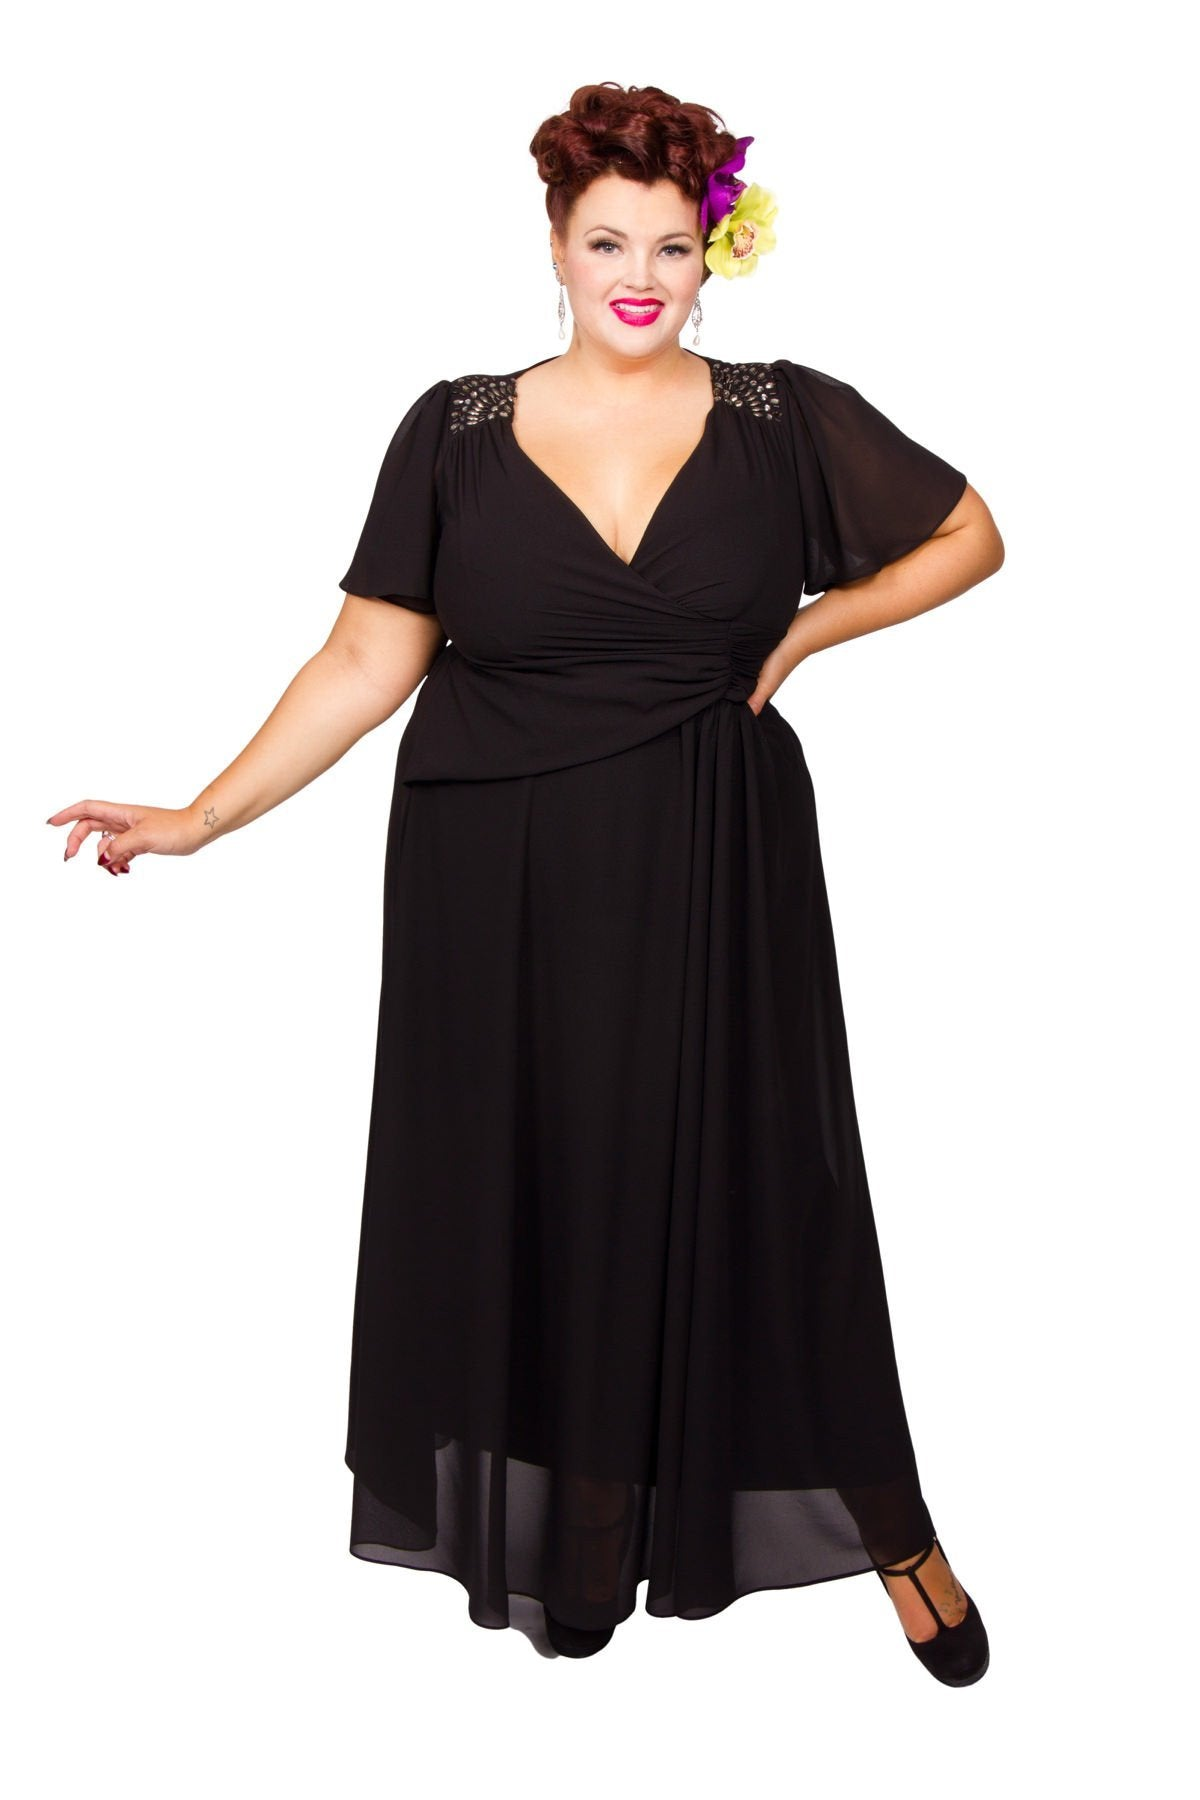 1940s Cocktail Dresses, Party Dresses Embellished Shoulder Wrap Gown - Black  26 £80.00 AT vintagedancer.com